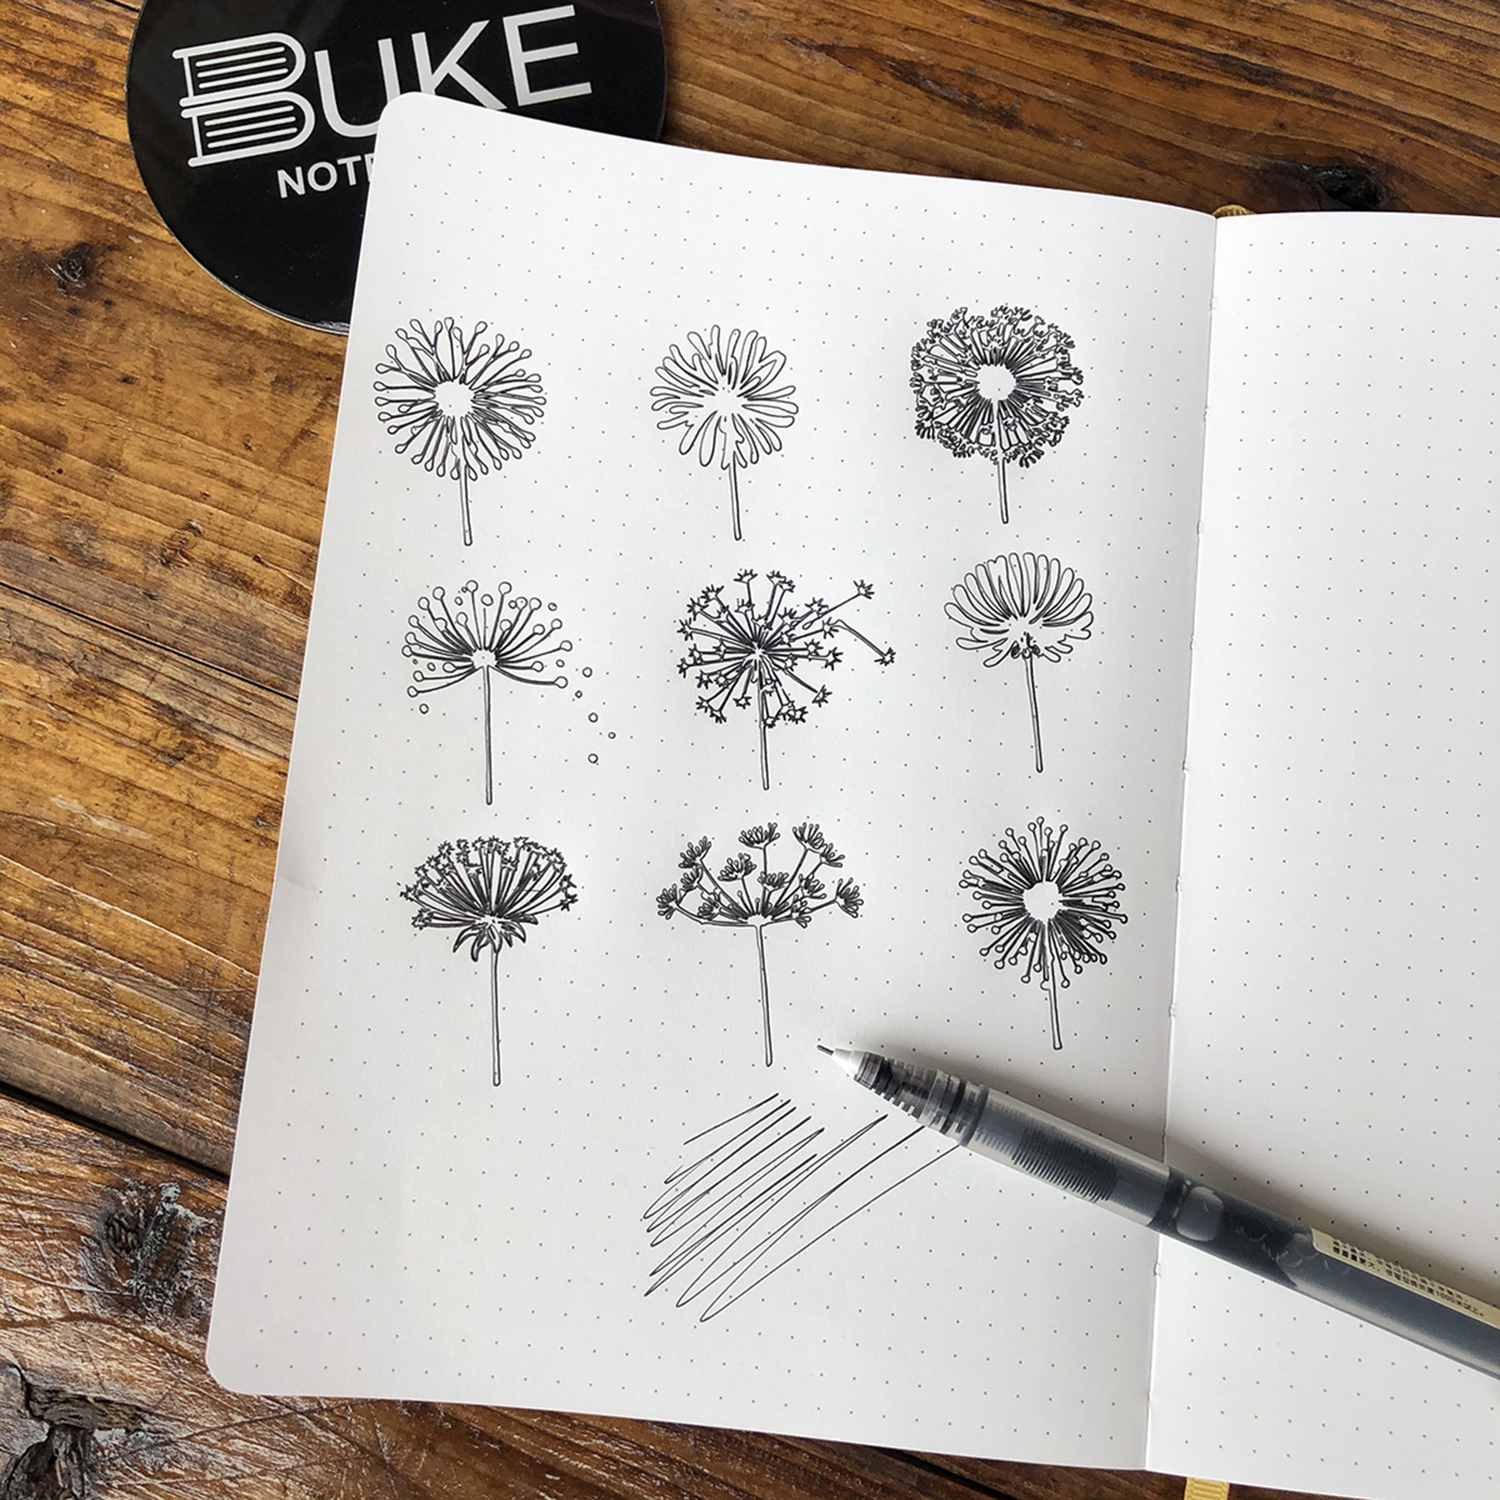 2021 Bullet Planner Dotted Notebook Dot Grid  Journal to Increase Productivity, Passion, Purpose & Happiness 6